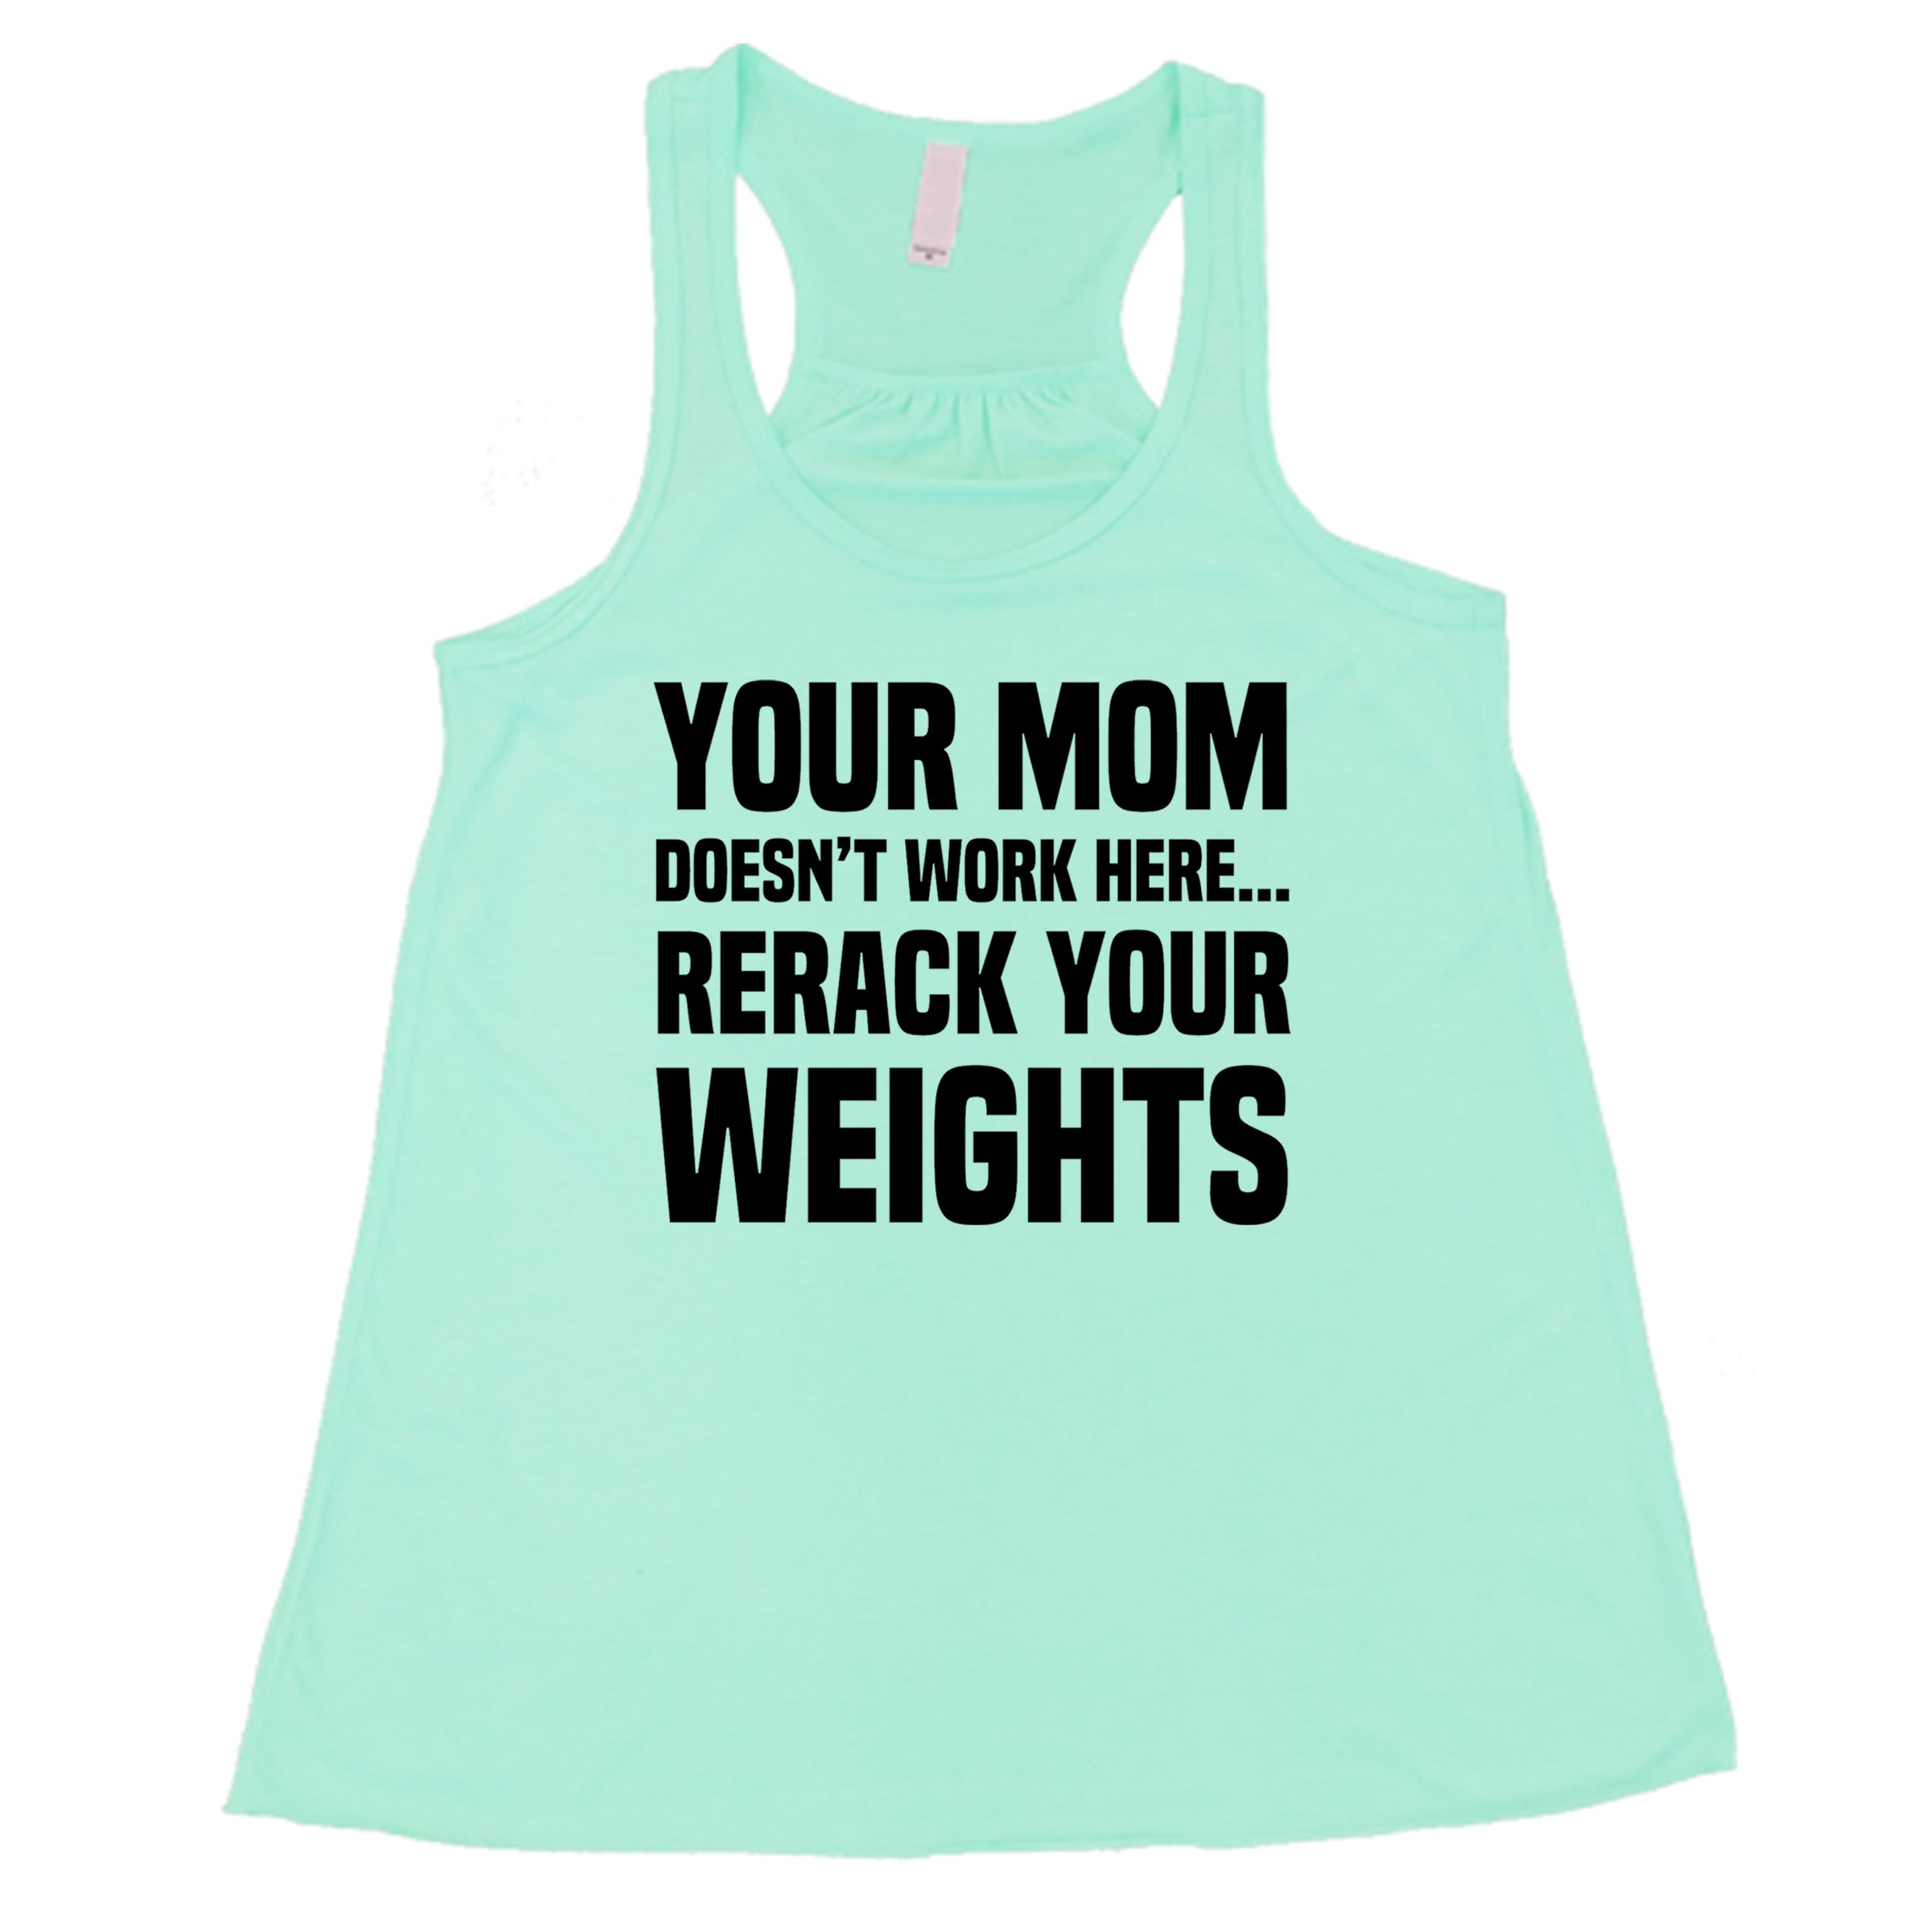 Your Mom Doesn't Work Here Rerack Your Weights Shirt